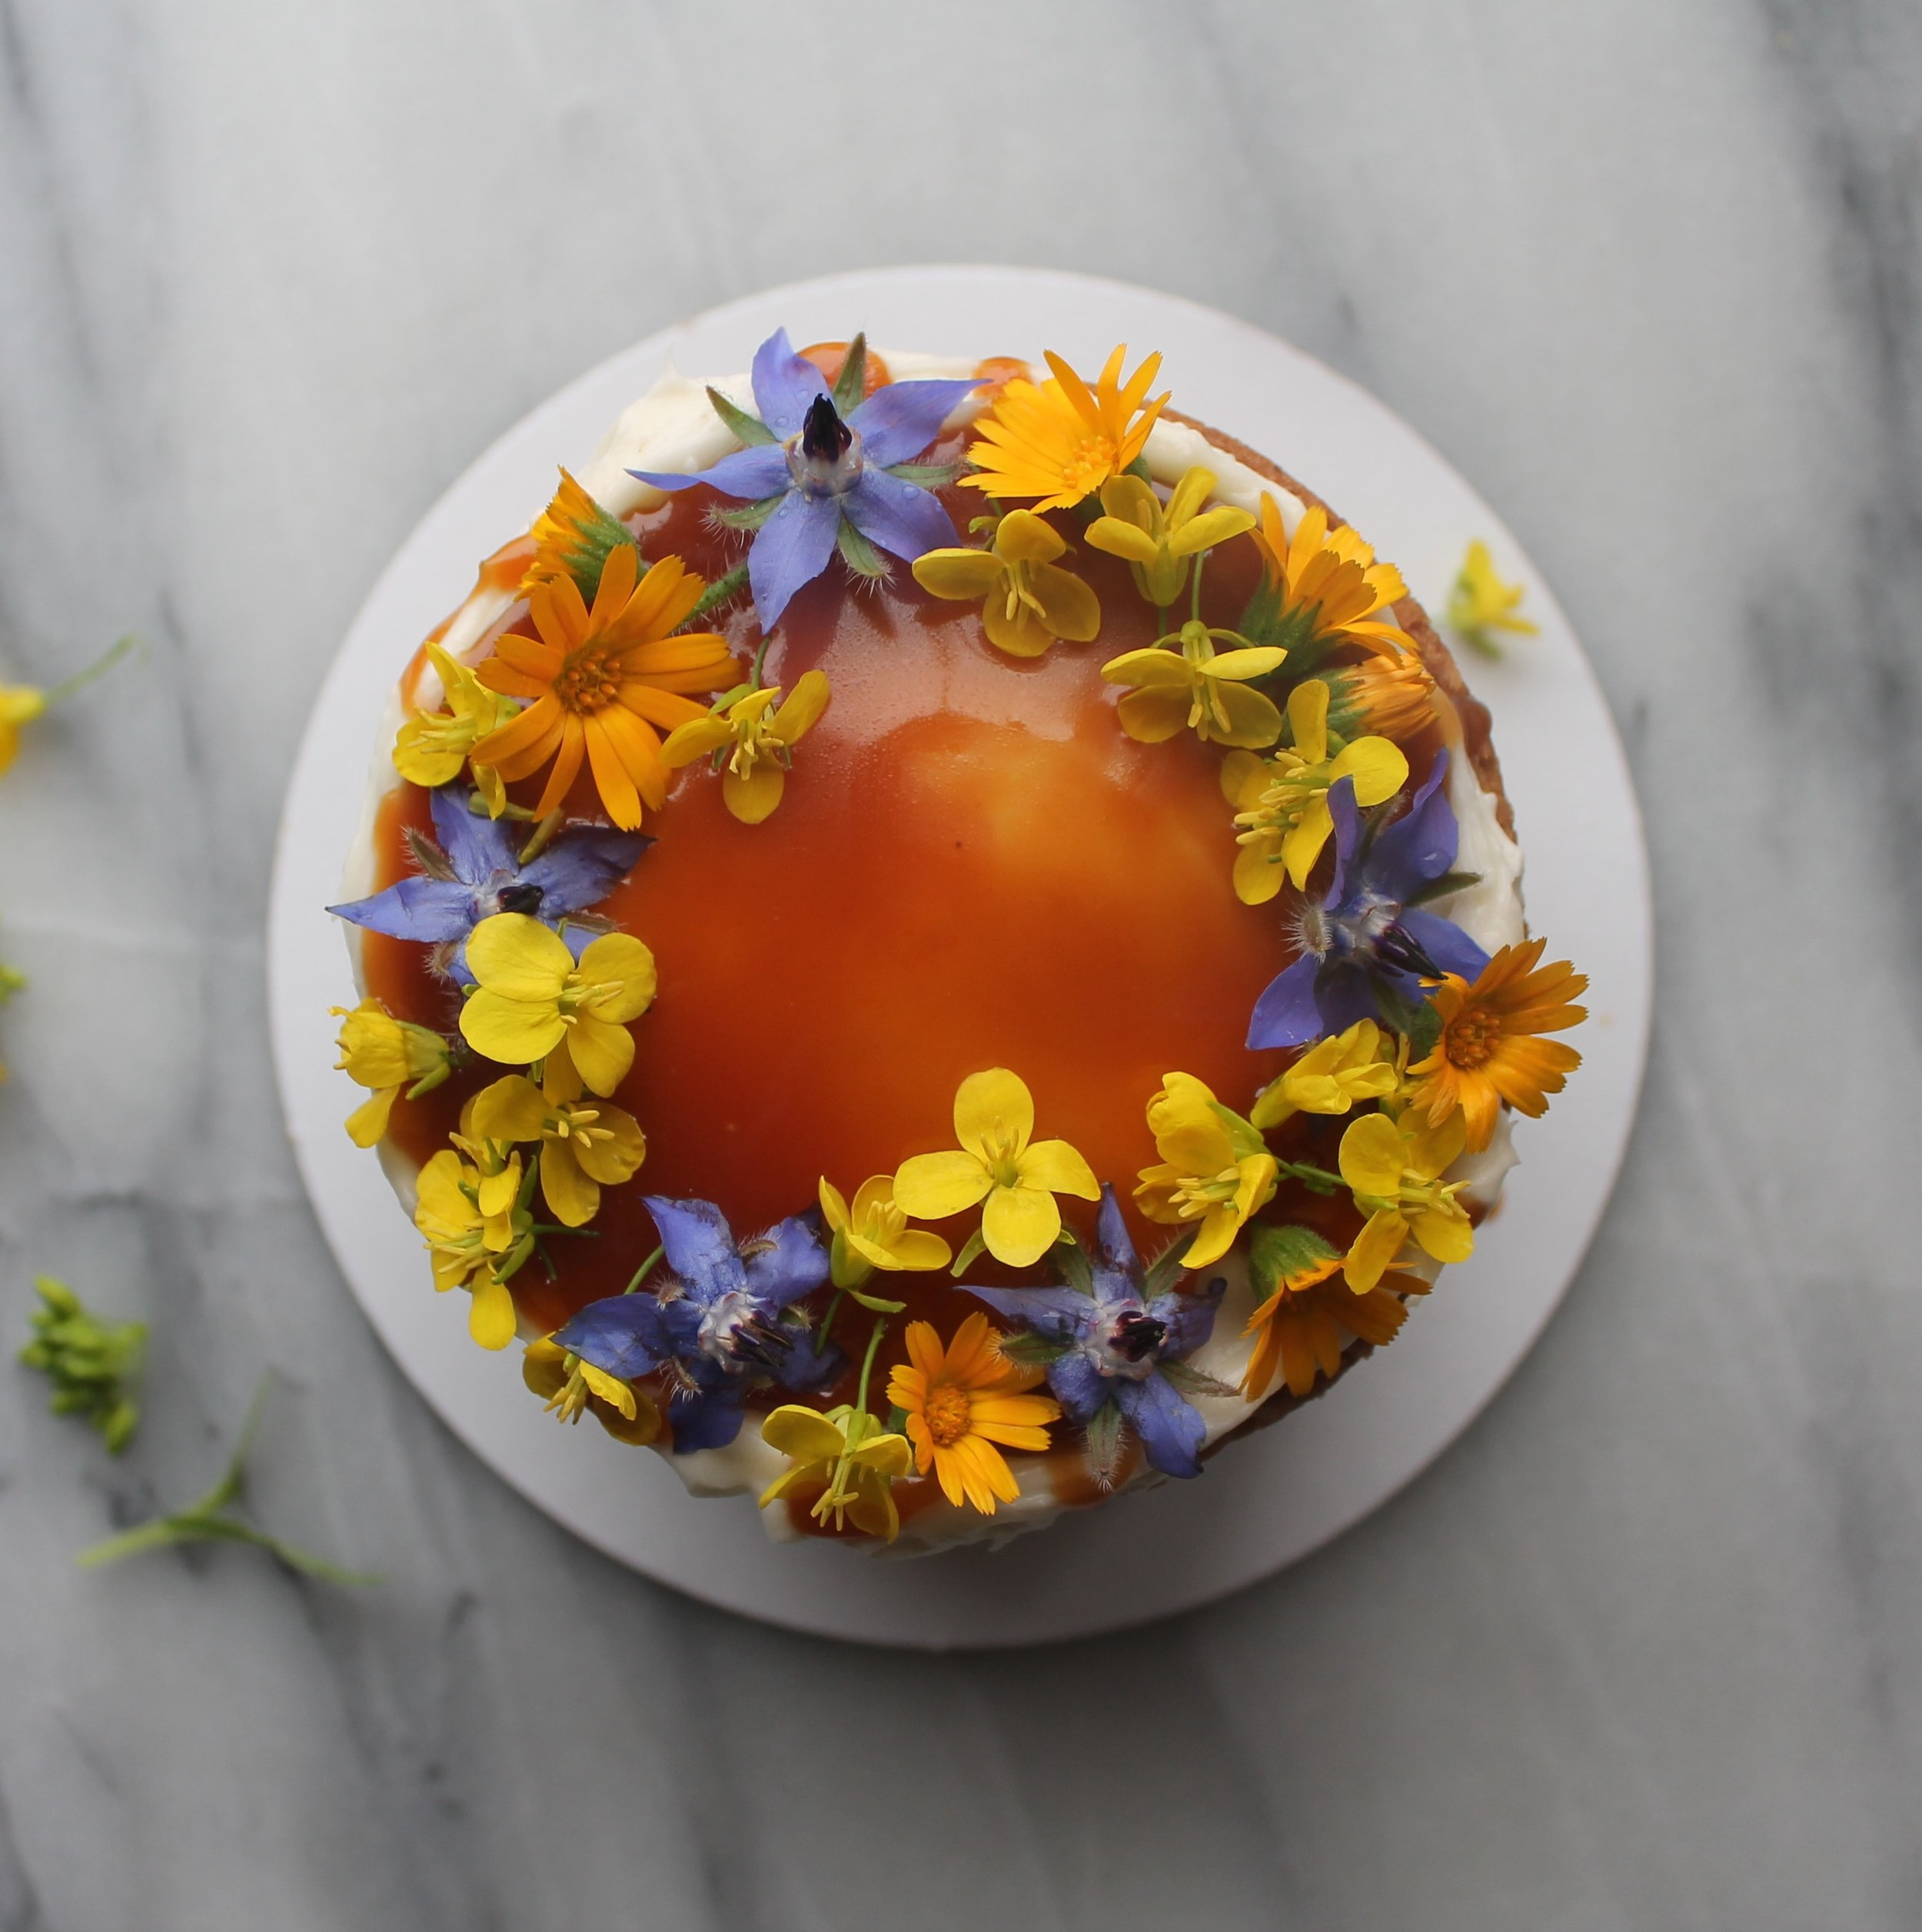 Edible flower cake with calendula, mustard, borage by Cake Bloom